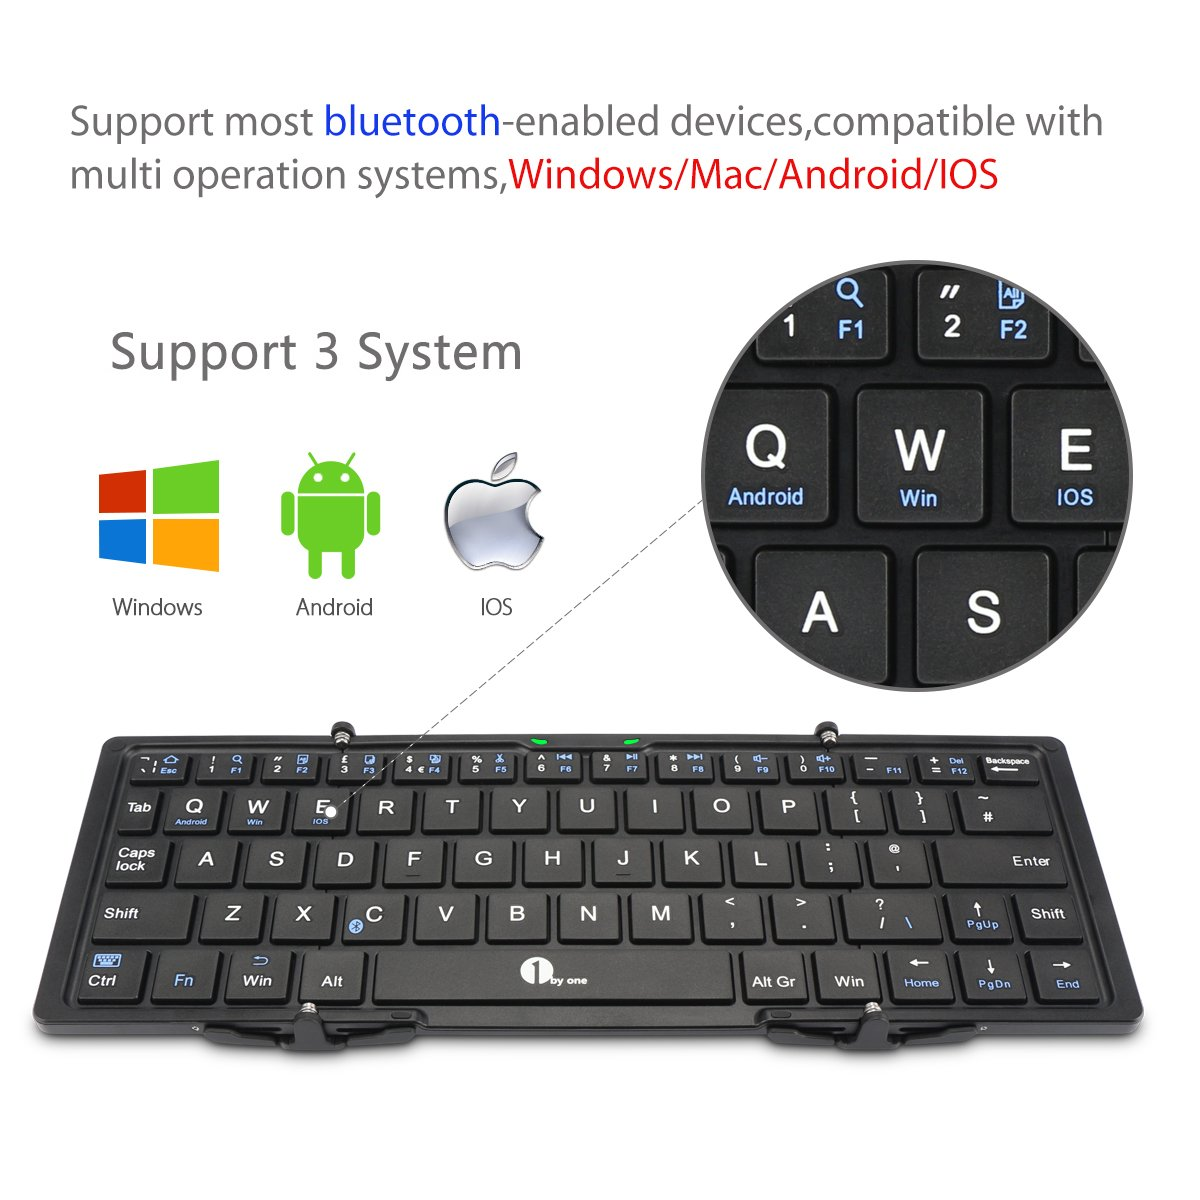 1byone Foldable Bluetooth Keyboard, Portable Bluetooth Keyboard for iOS, Android, Windows, PC, Tablets and Smartphone, Black